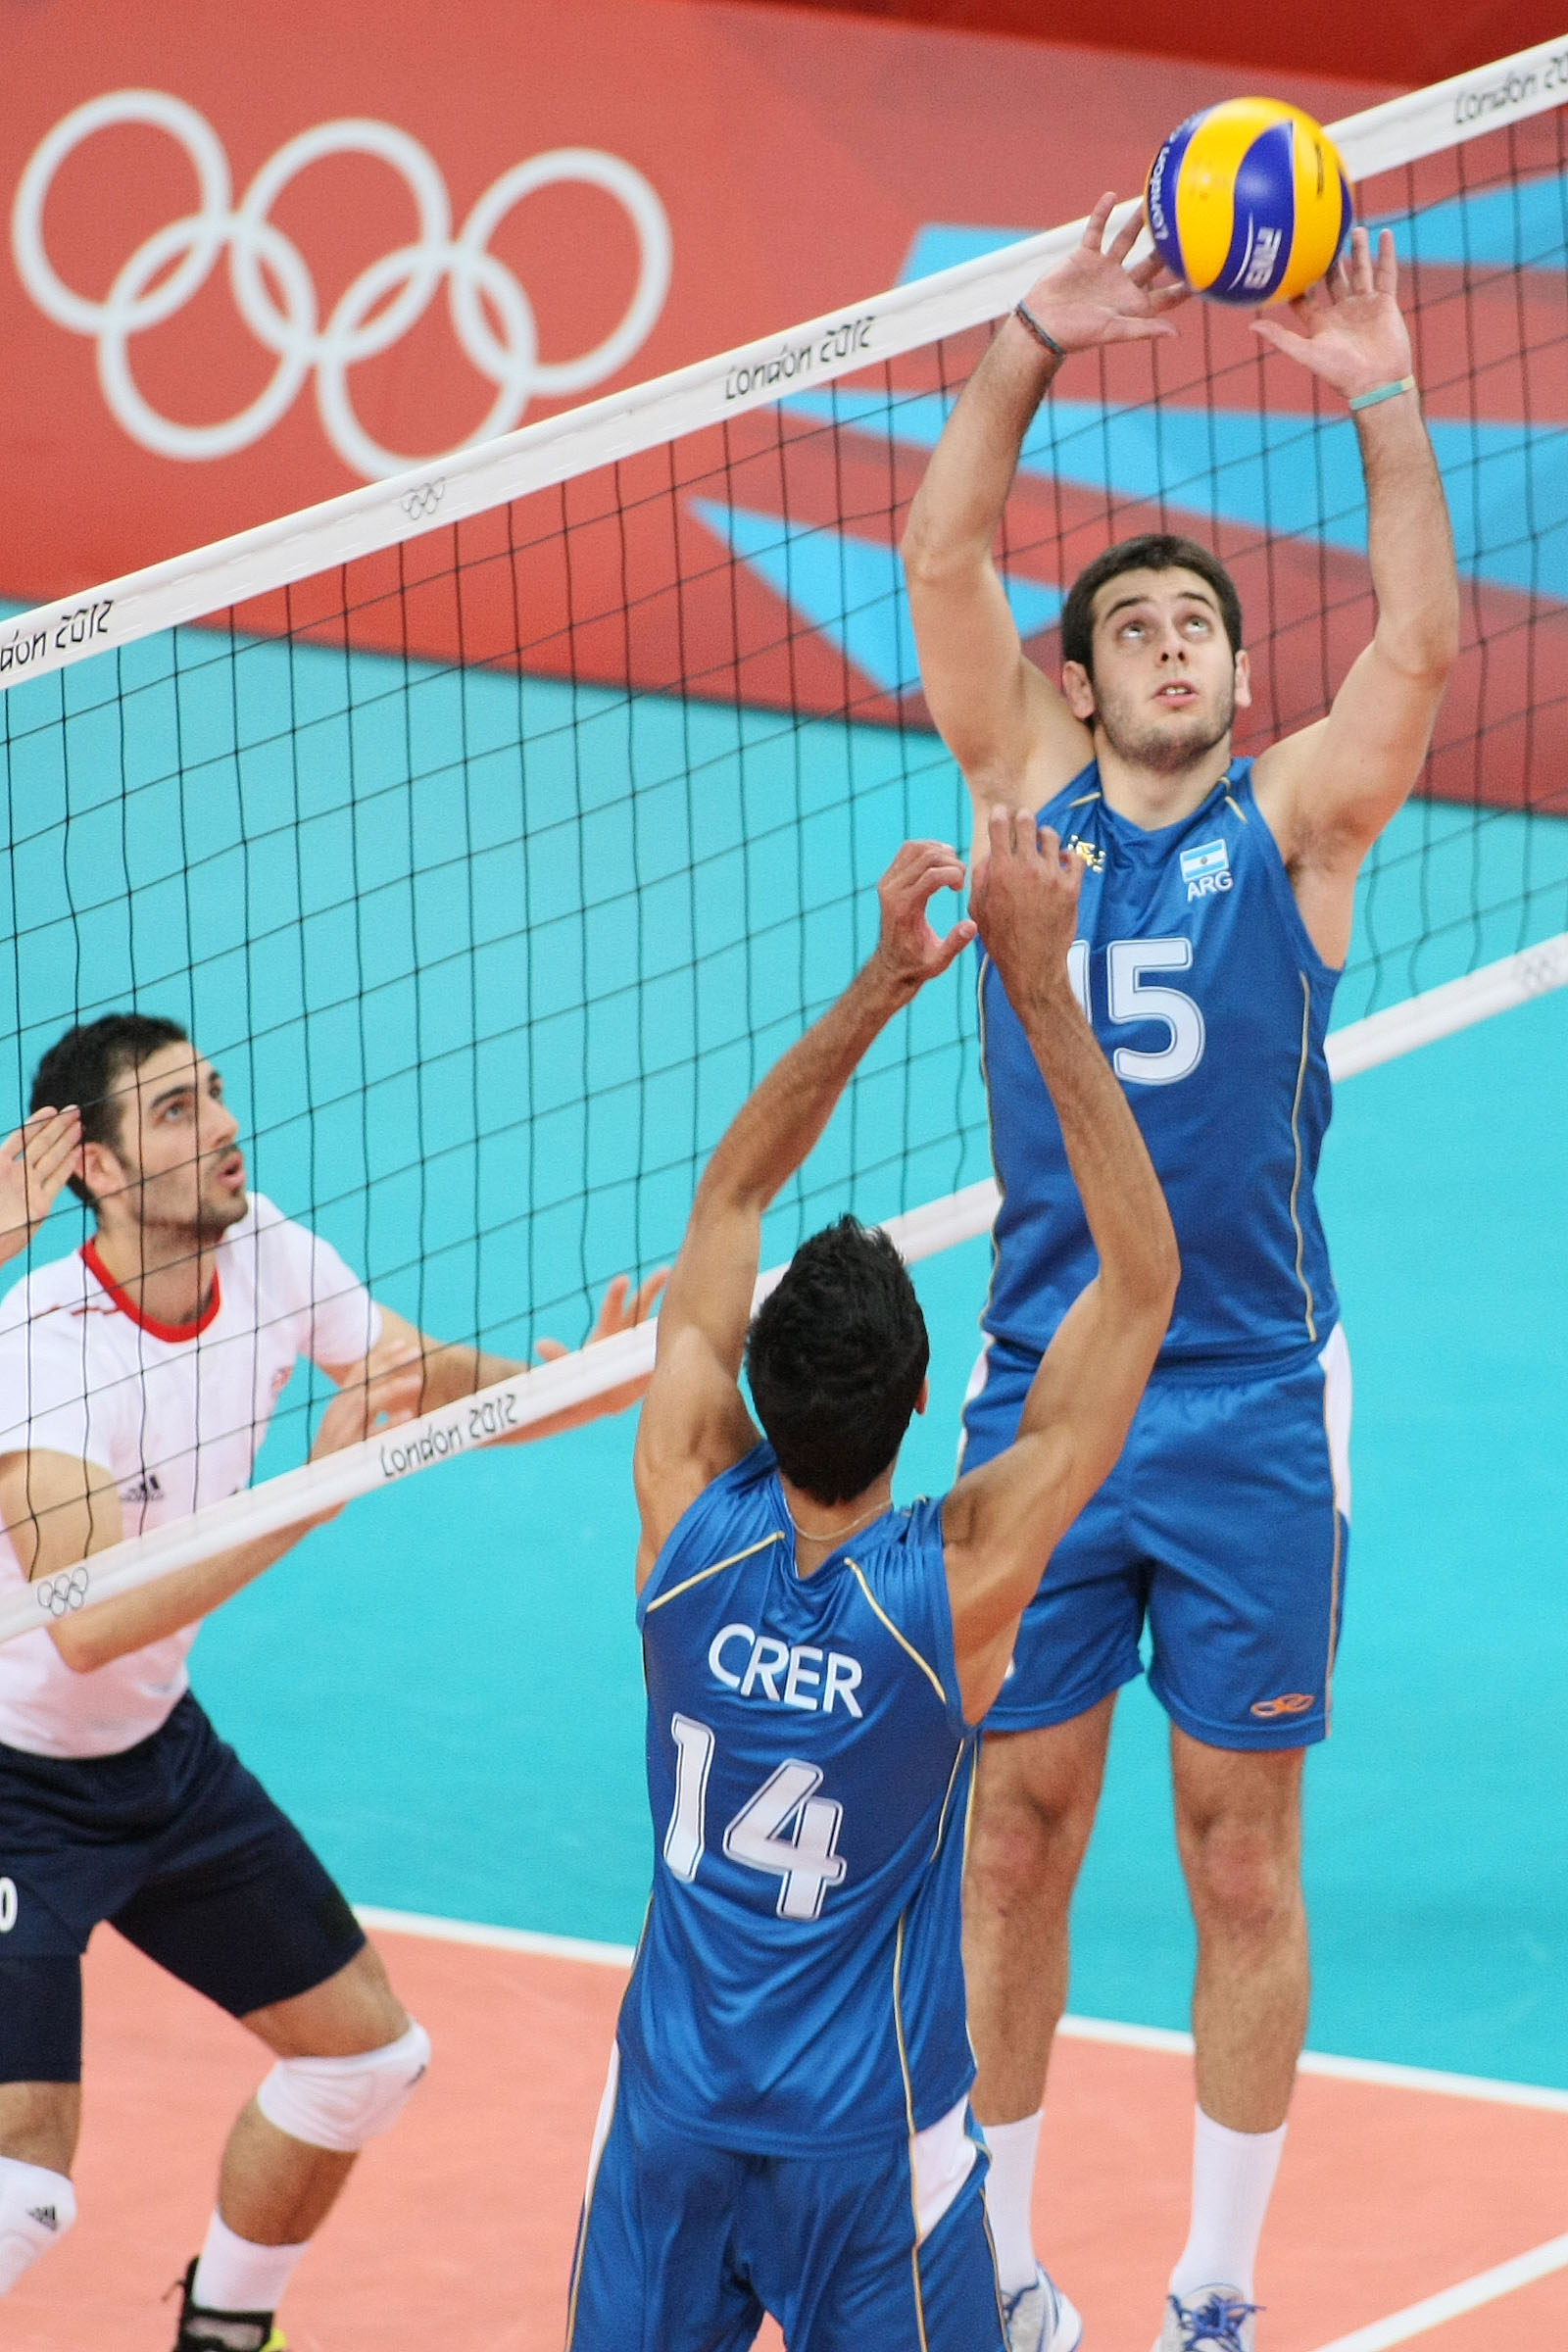 Luciano de cecco best volleyball setter volleywood